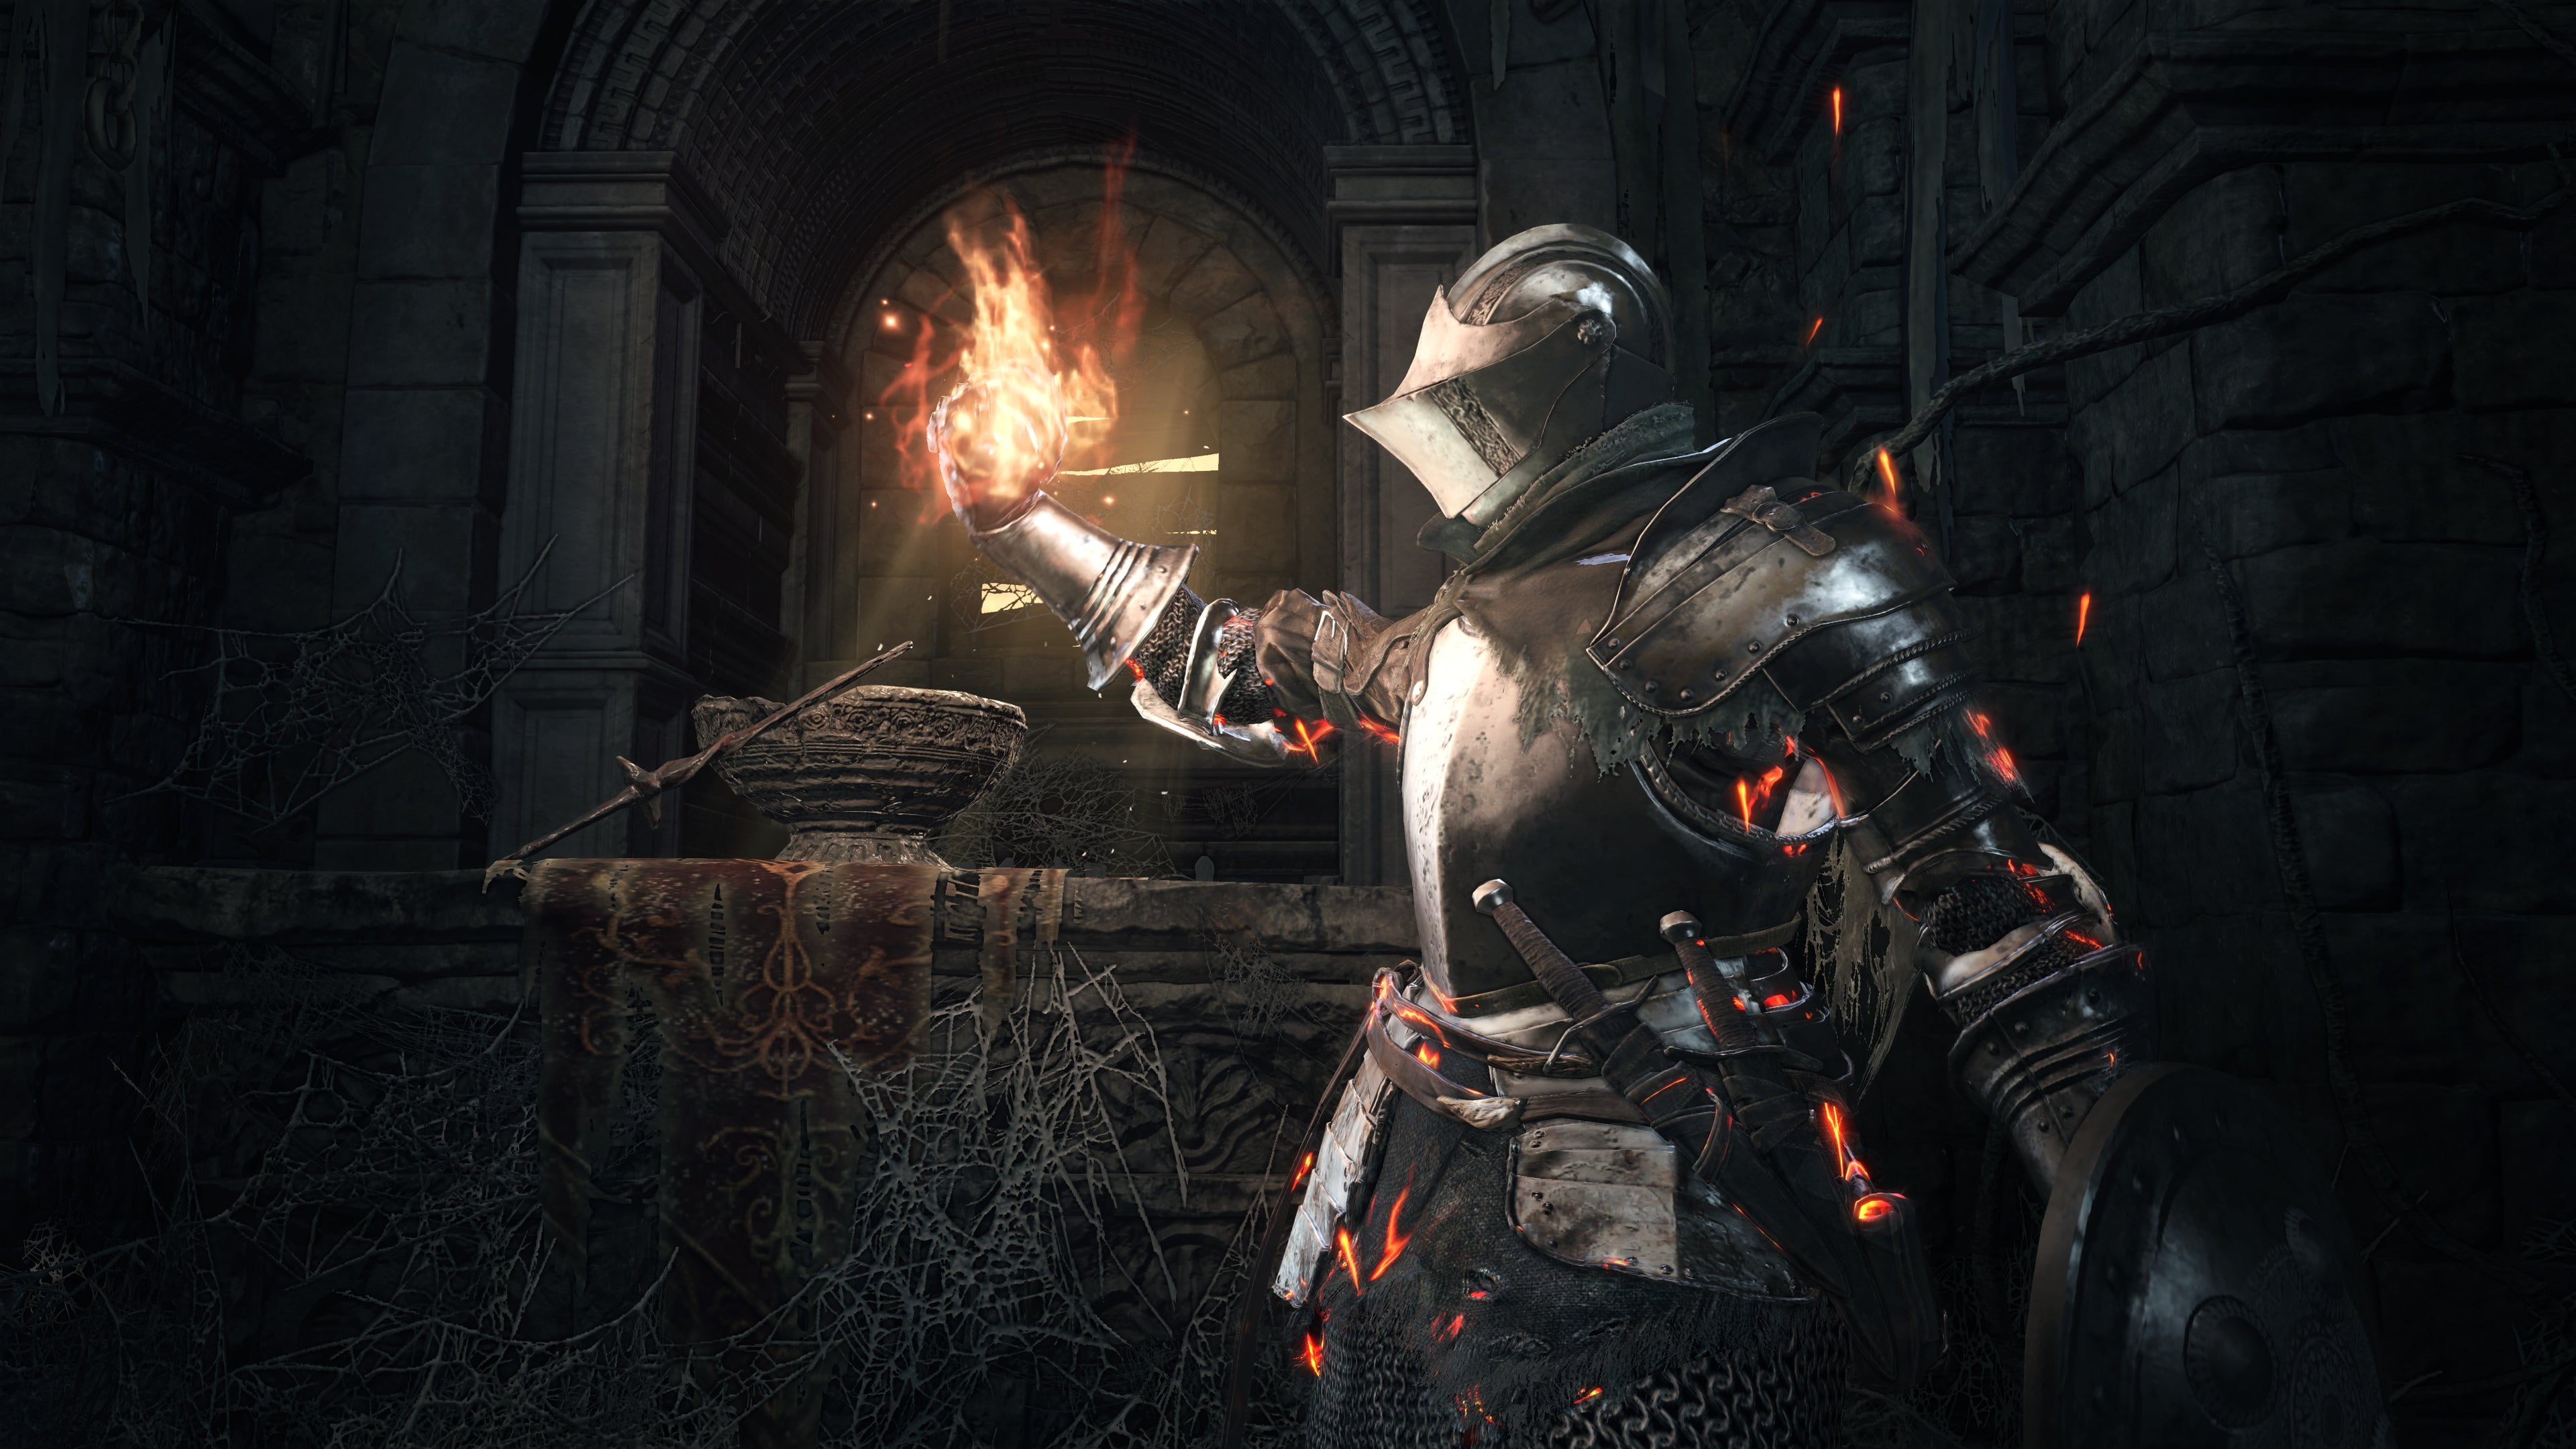 Namco Teases 'Big' Dark Souls 3 News, Turns Out To Be Crappy Merch